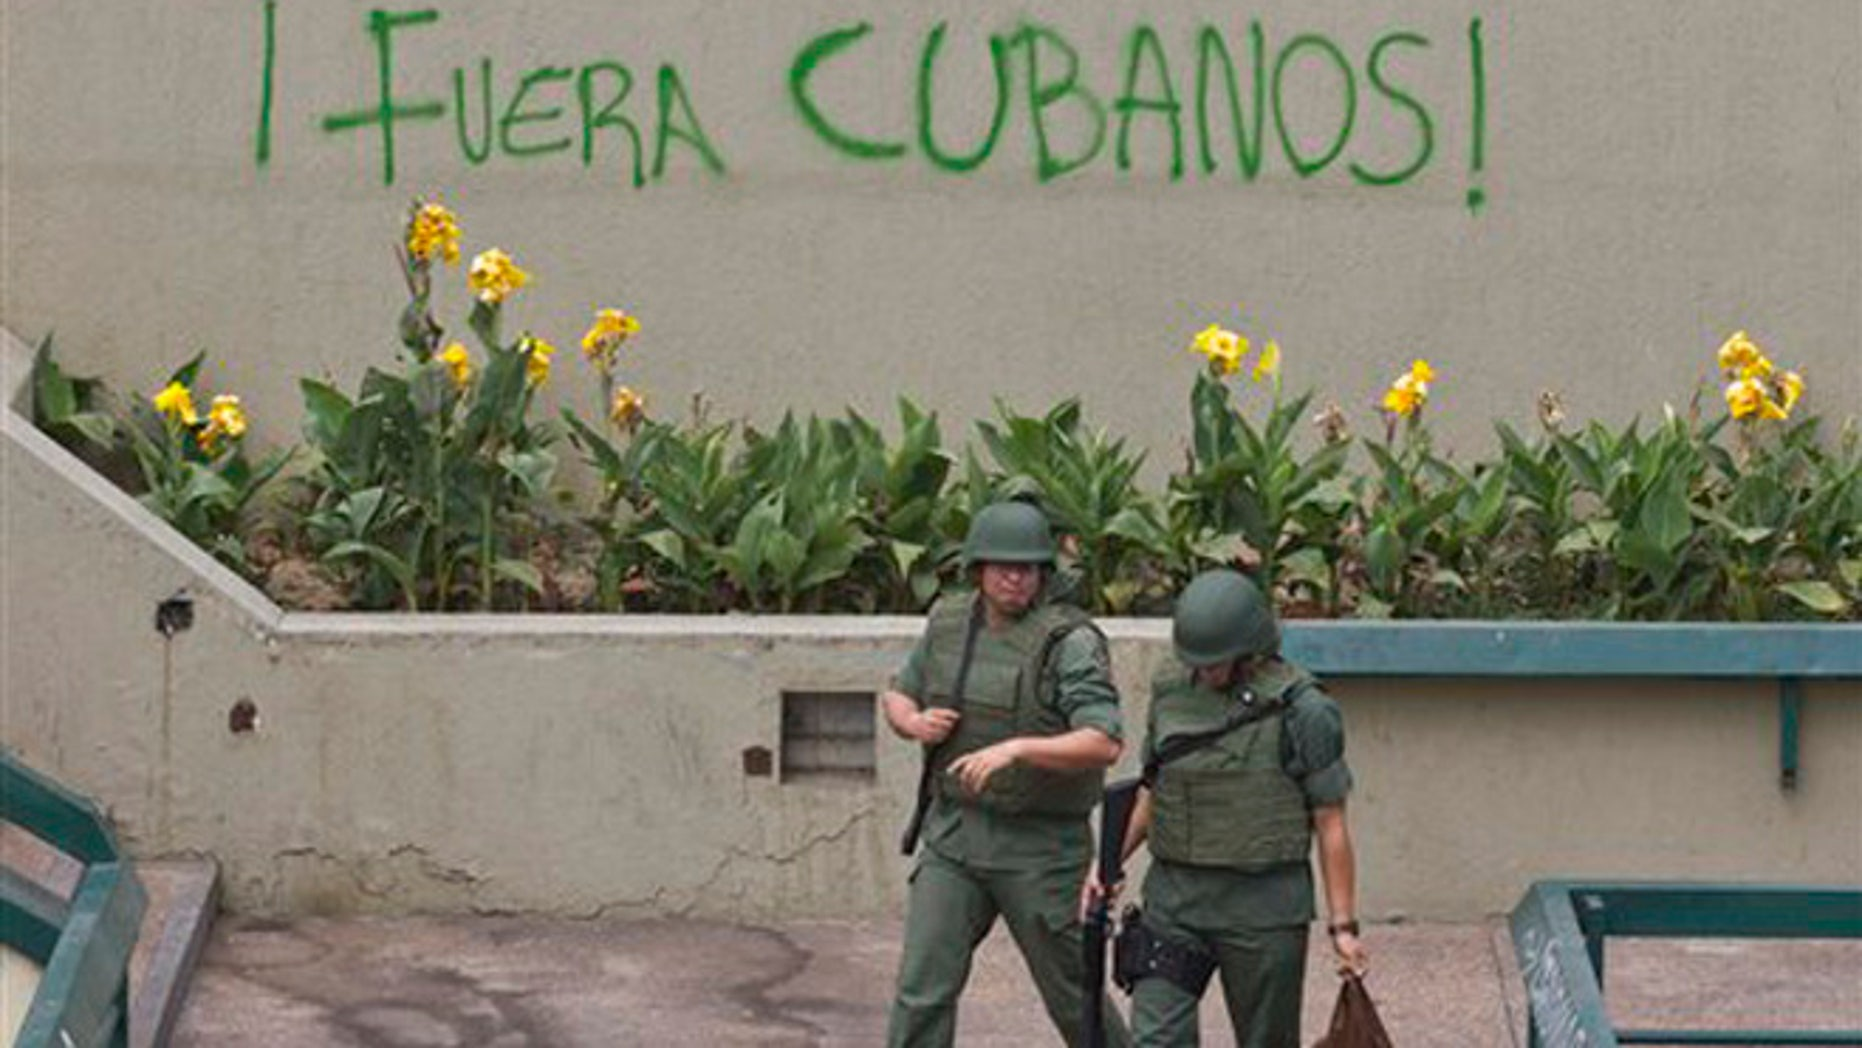 """Bolivarian National Guard officers patrol Plaza Altamira after taking control of it, in Caracas, Venezuela, Monday, March 17, 2014. Government security forces took control of a Caracas plaza and surrounding neighborhoods Monday morning that had become the center of student-led protests. The graffiti on the wall reads in Spanish """"Cubans Out!"""". Clusters of National Guardsmen were a visible presence not only on Plaza Altamira, but along the principal streets extending from it in the municipality of Chacao."""